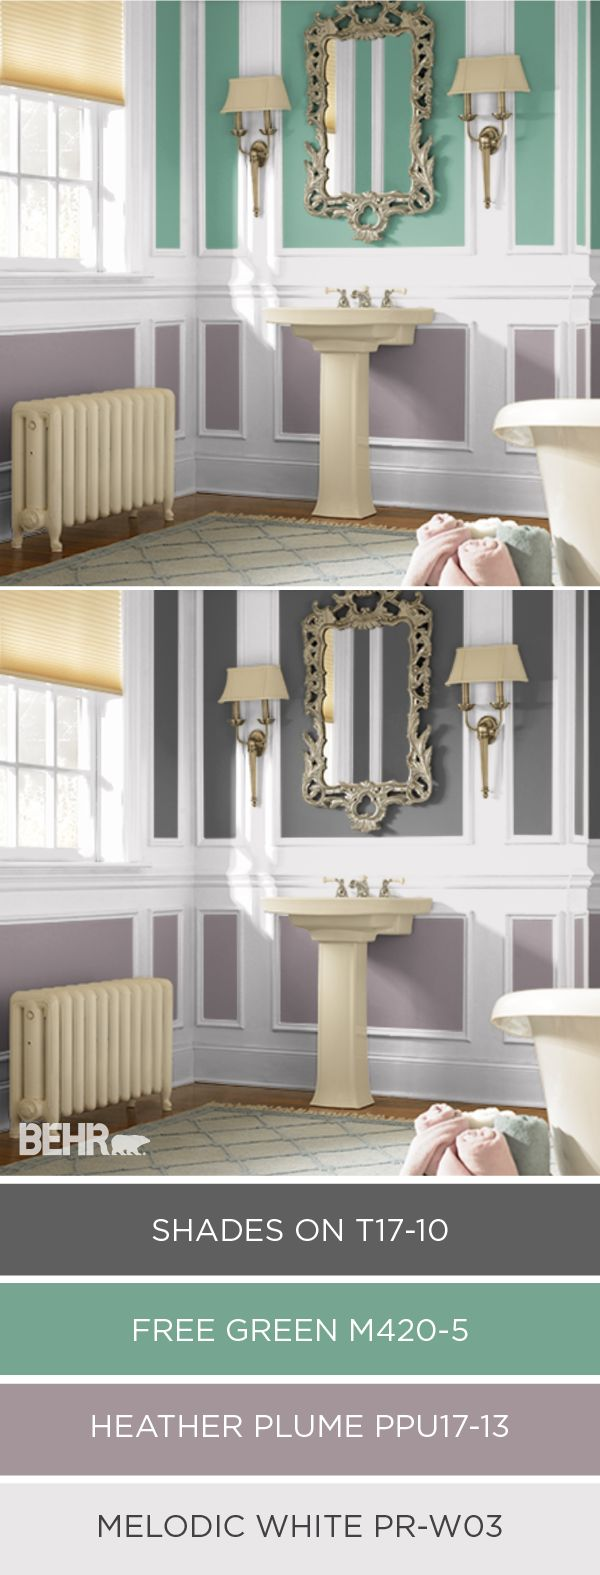 Check Out Behr S Collection Of Color Curs For 2017 These Modern Shades Can Be